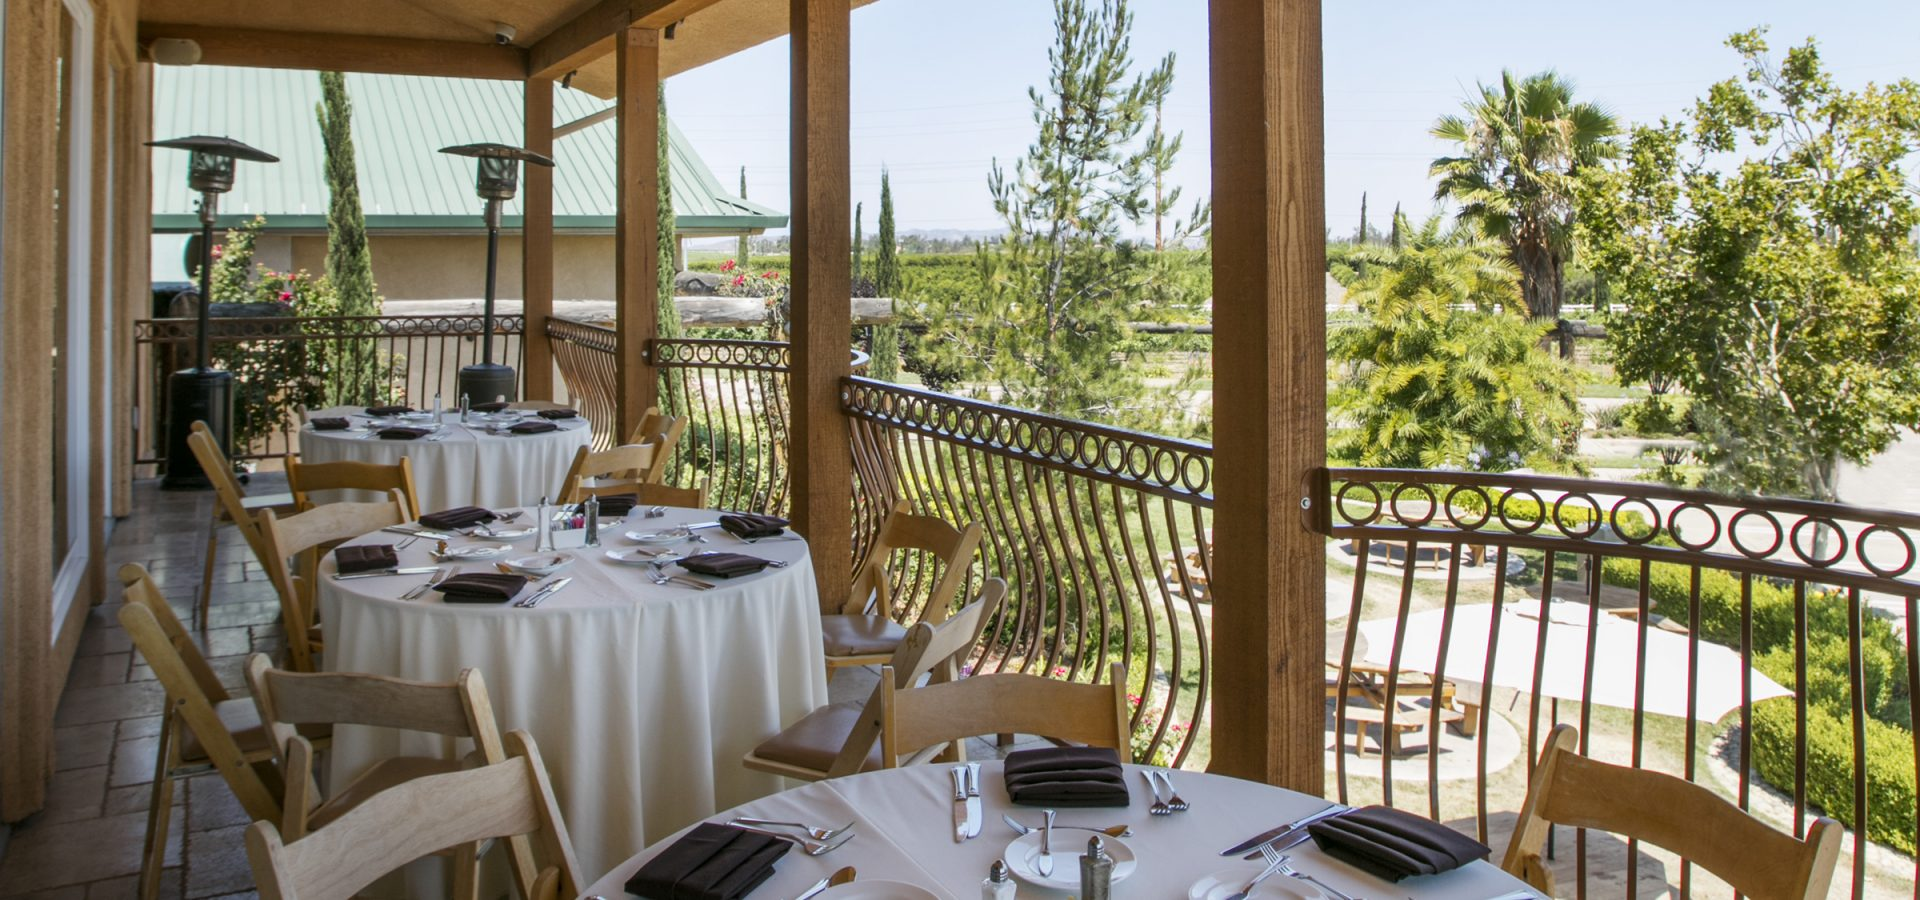 outdoor seating at South Coast Winery Resort restaurant